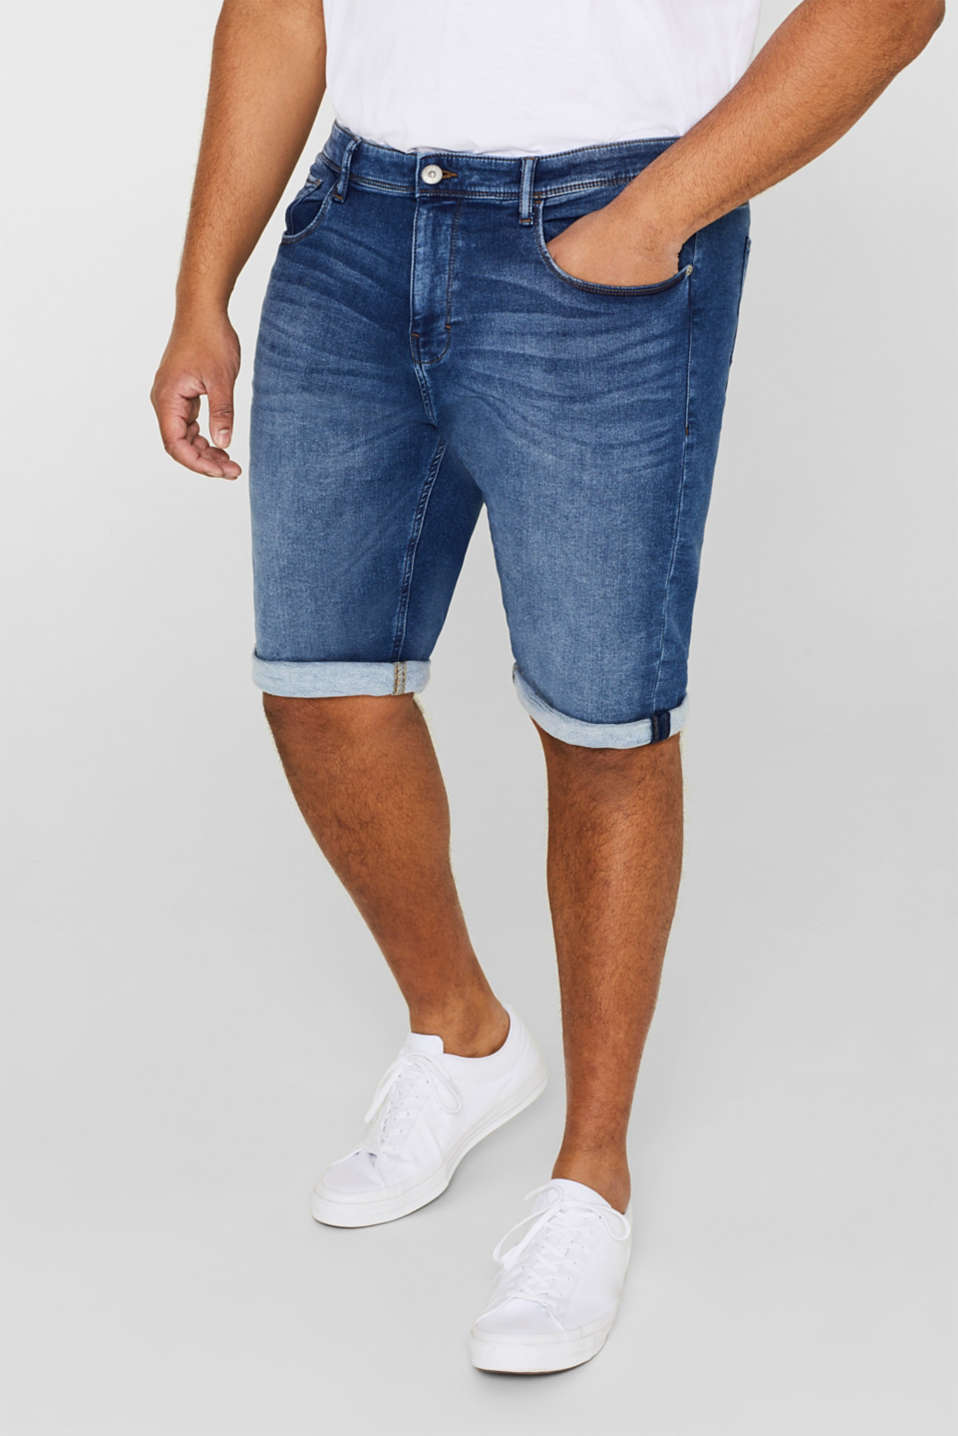 Esprit - Short en matière jogging super stretch d'aspect jean